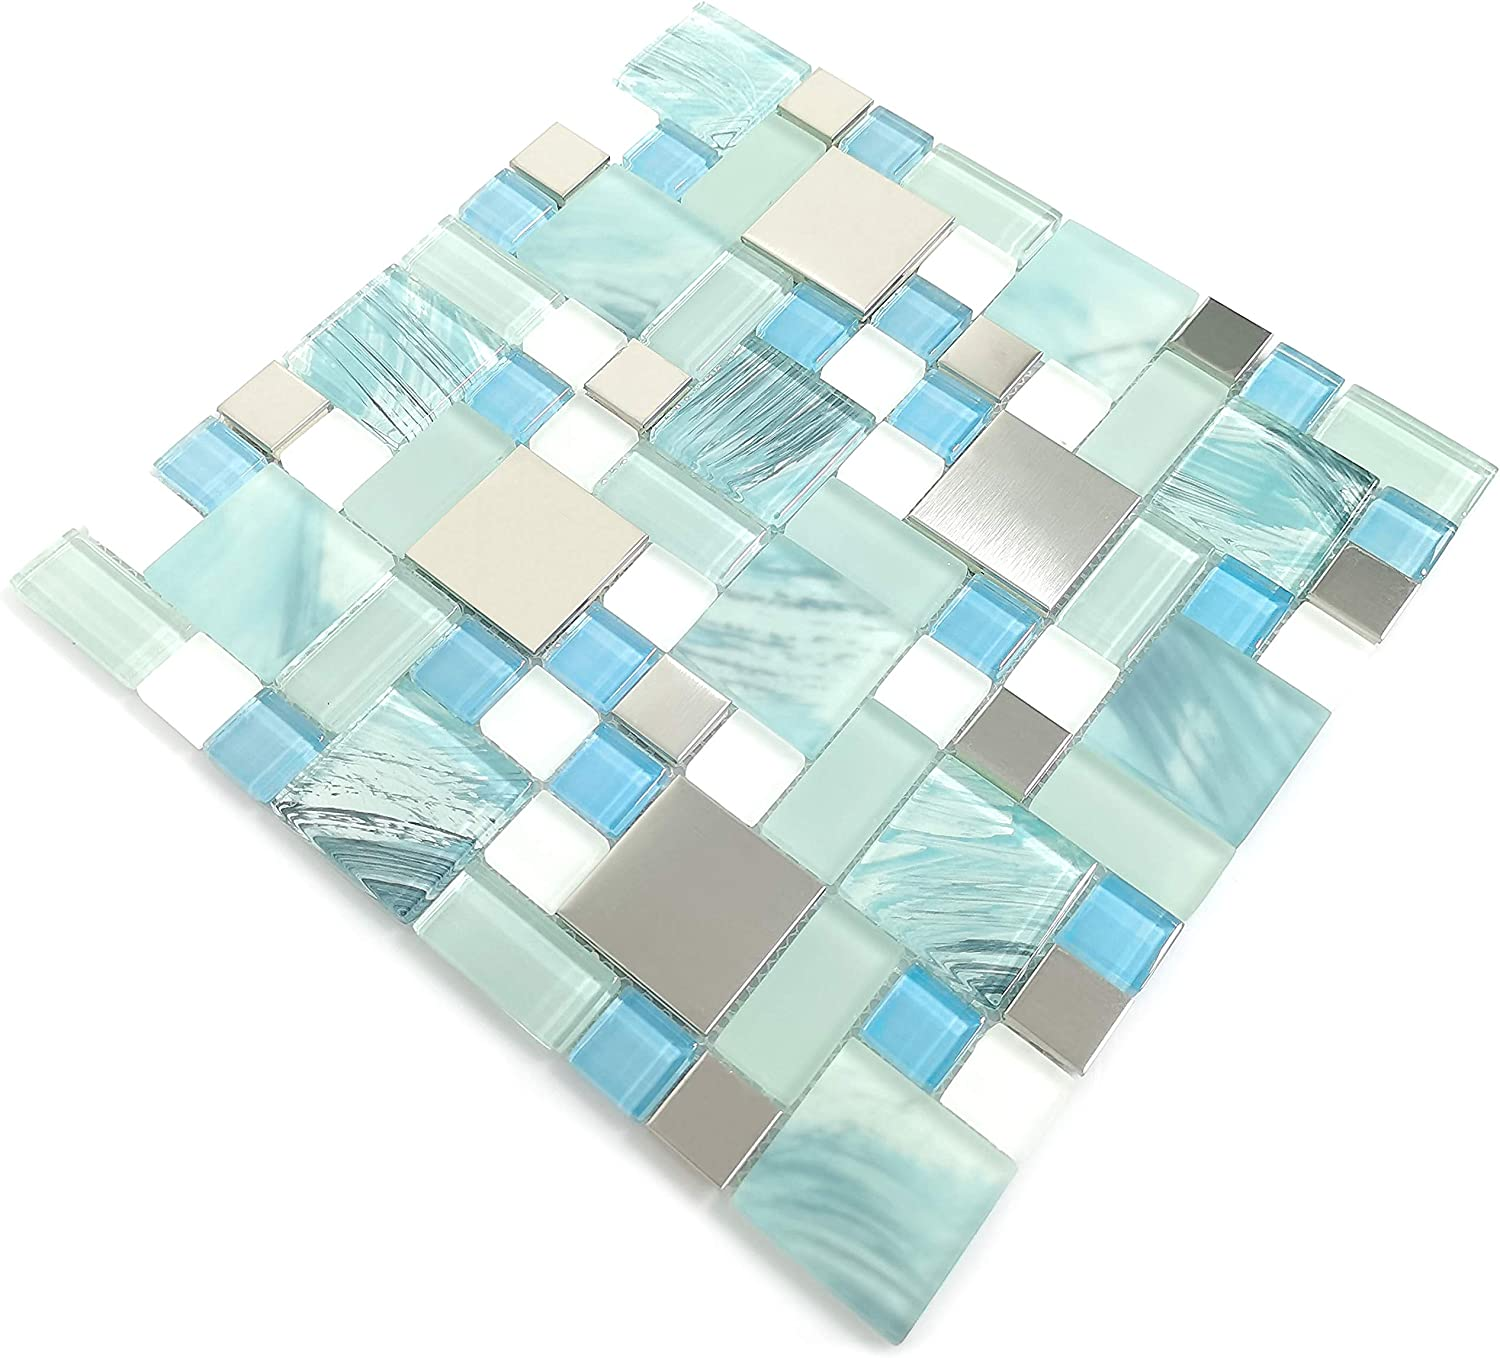 5 ☆ popular Hand Max 90% OFF Painted Ocean Blue Glass Silver Tiles Backsp Mosaic Kitchen